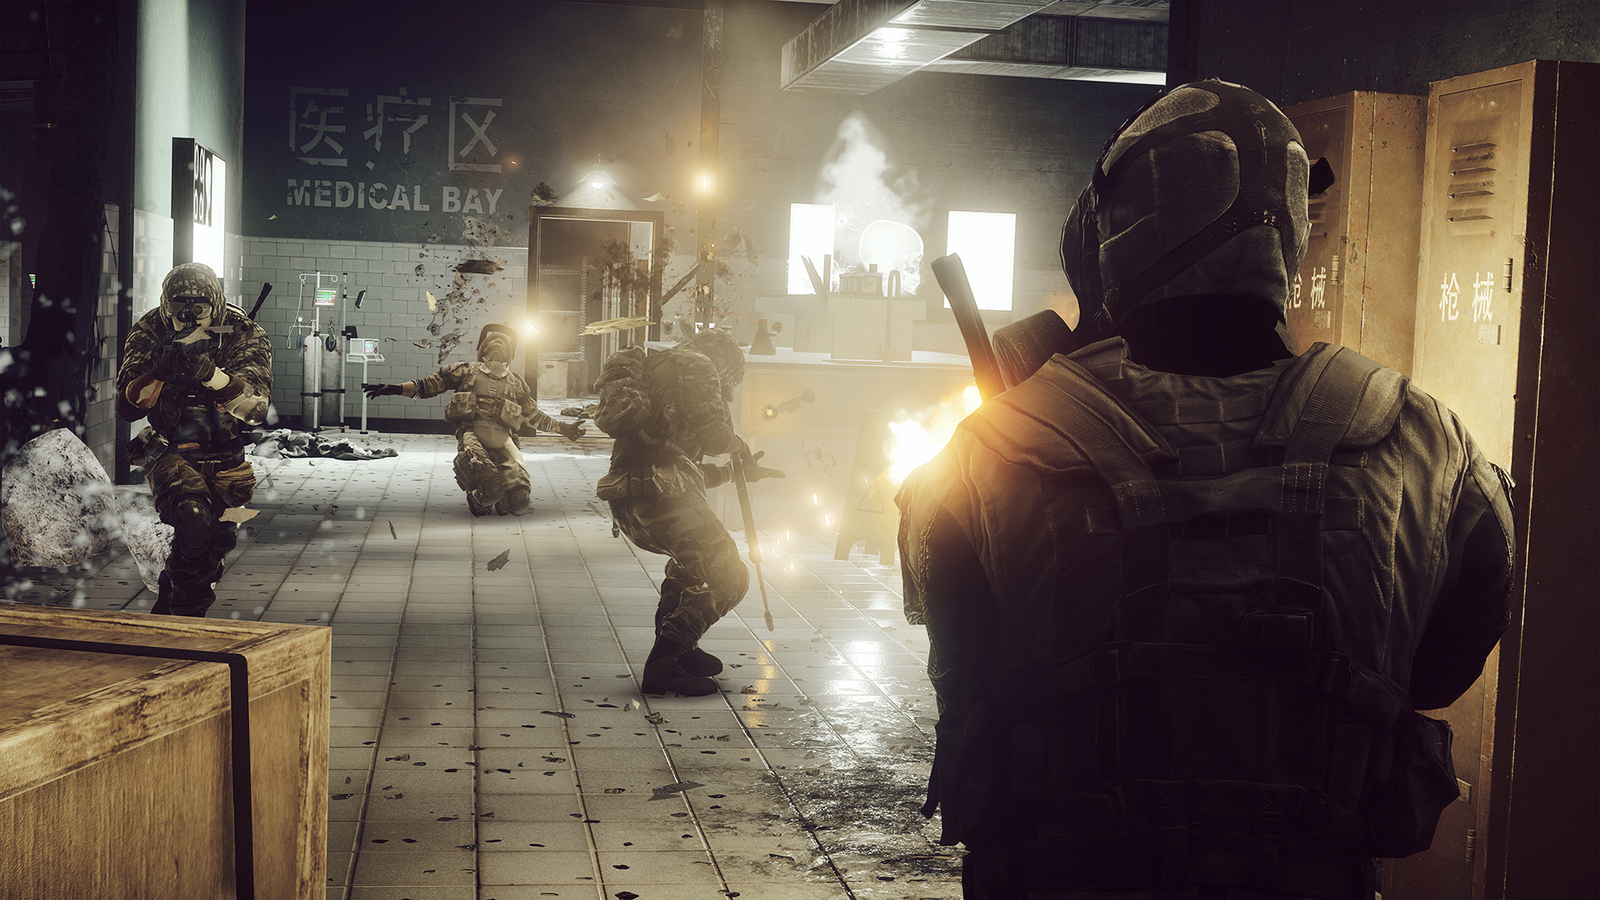 Battlefield 4 for PS4 image